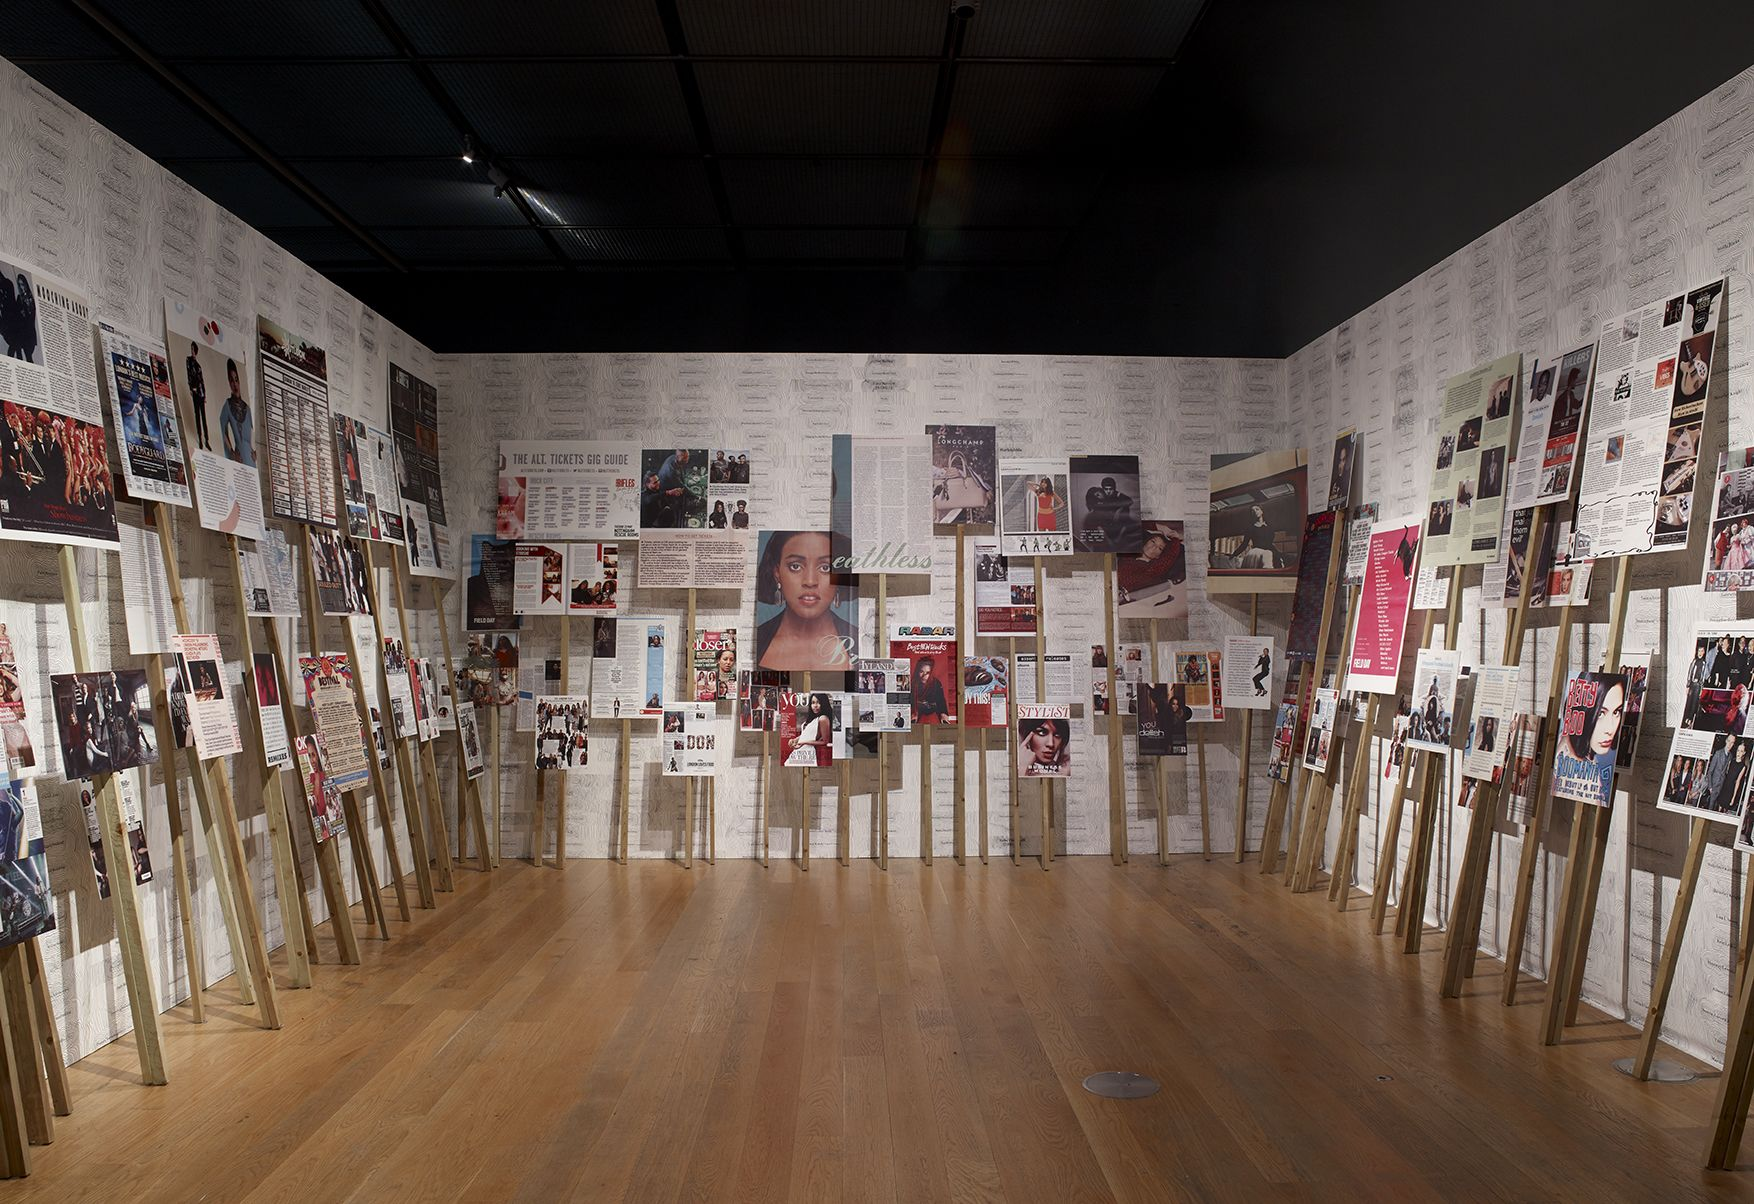 3 walls of an indoor installation of placards with images mounted on sticks of different heights